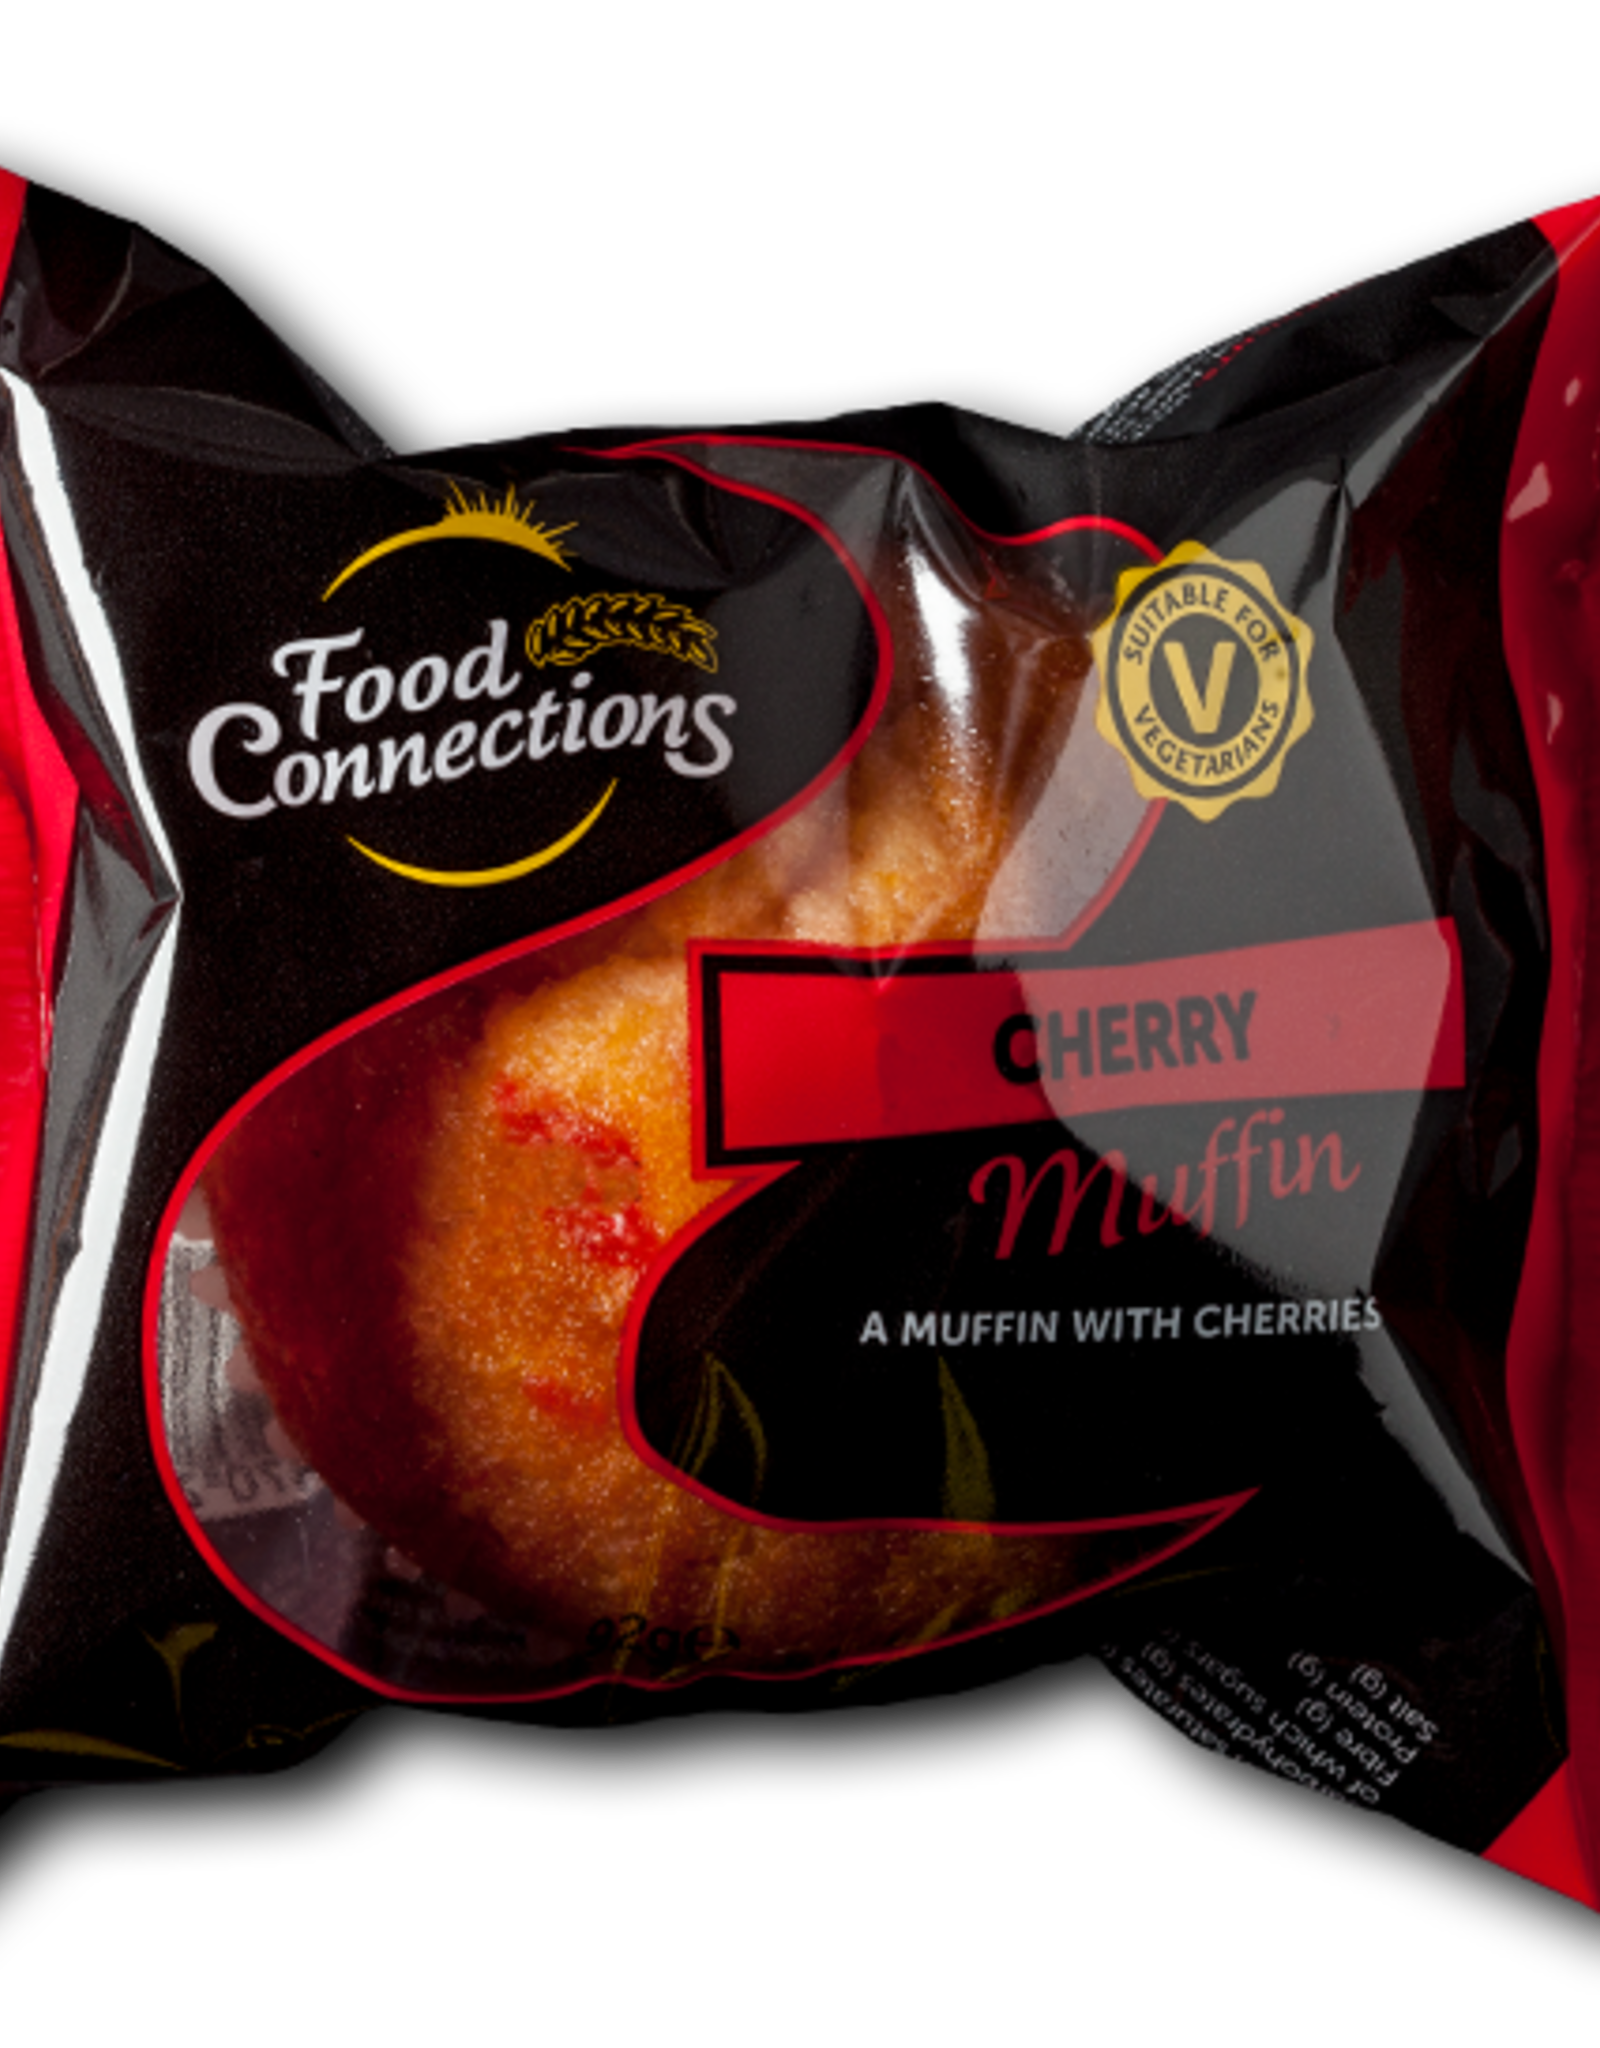 Food Connections Cherry Muffin